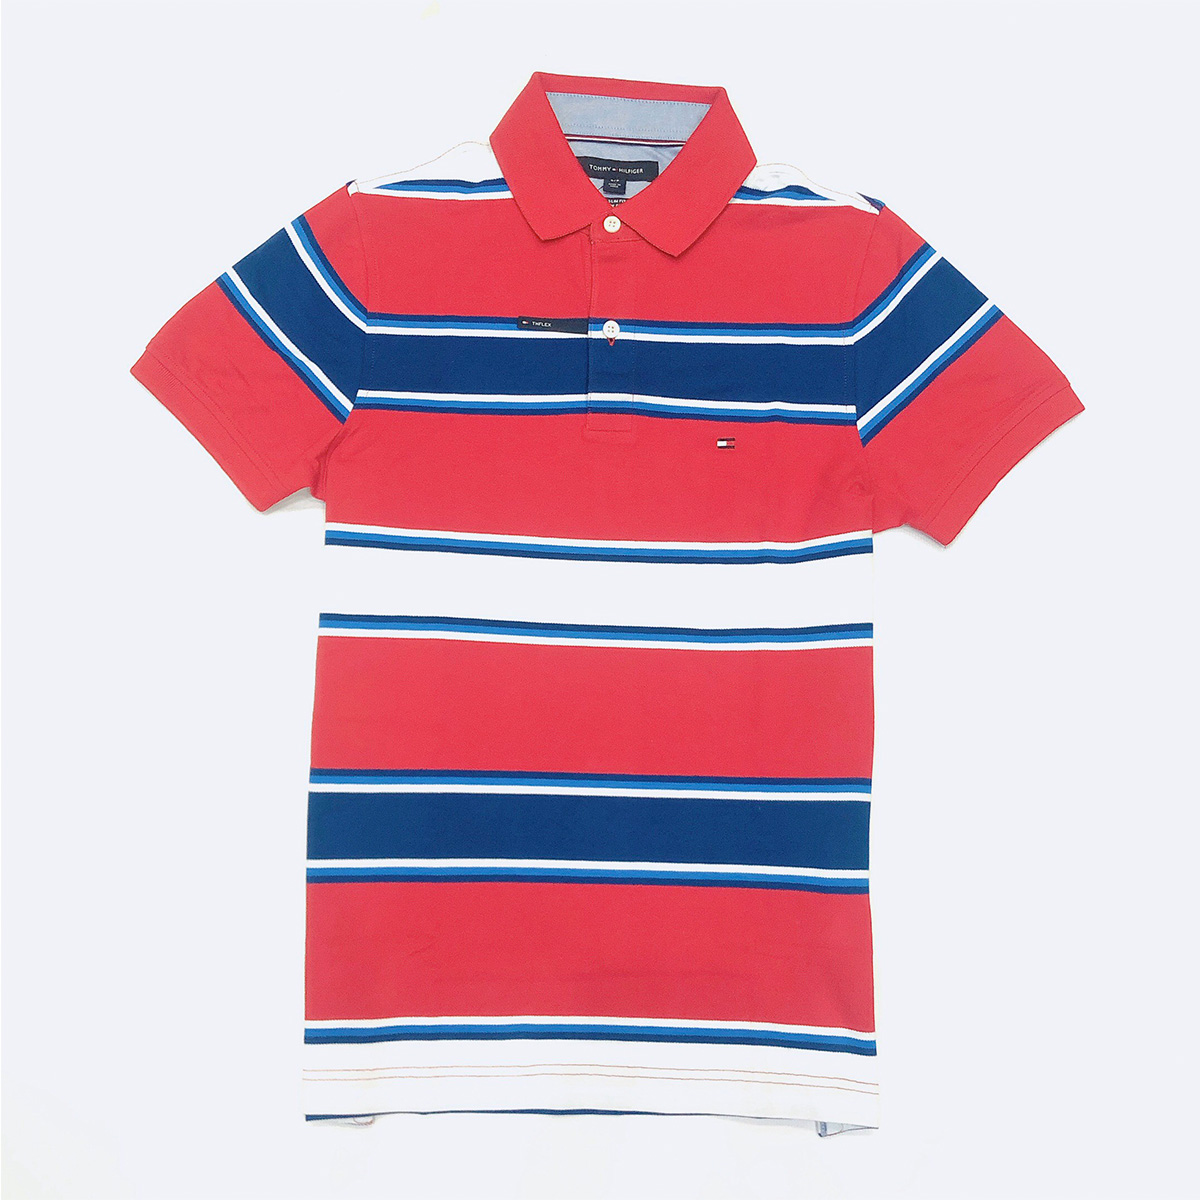 ao-polo-tommy-hilfiger-slim-fit-40